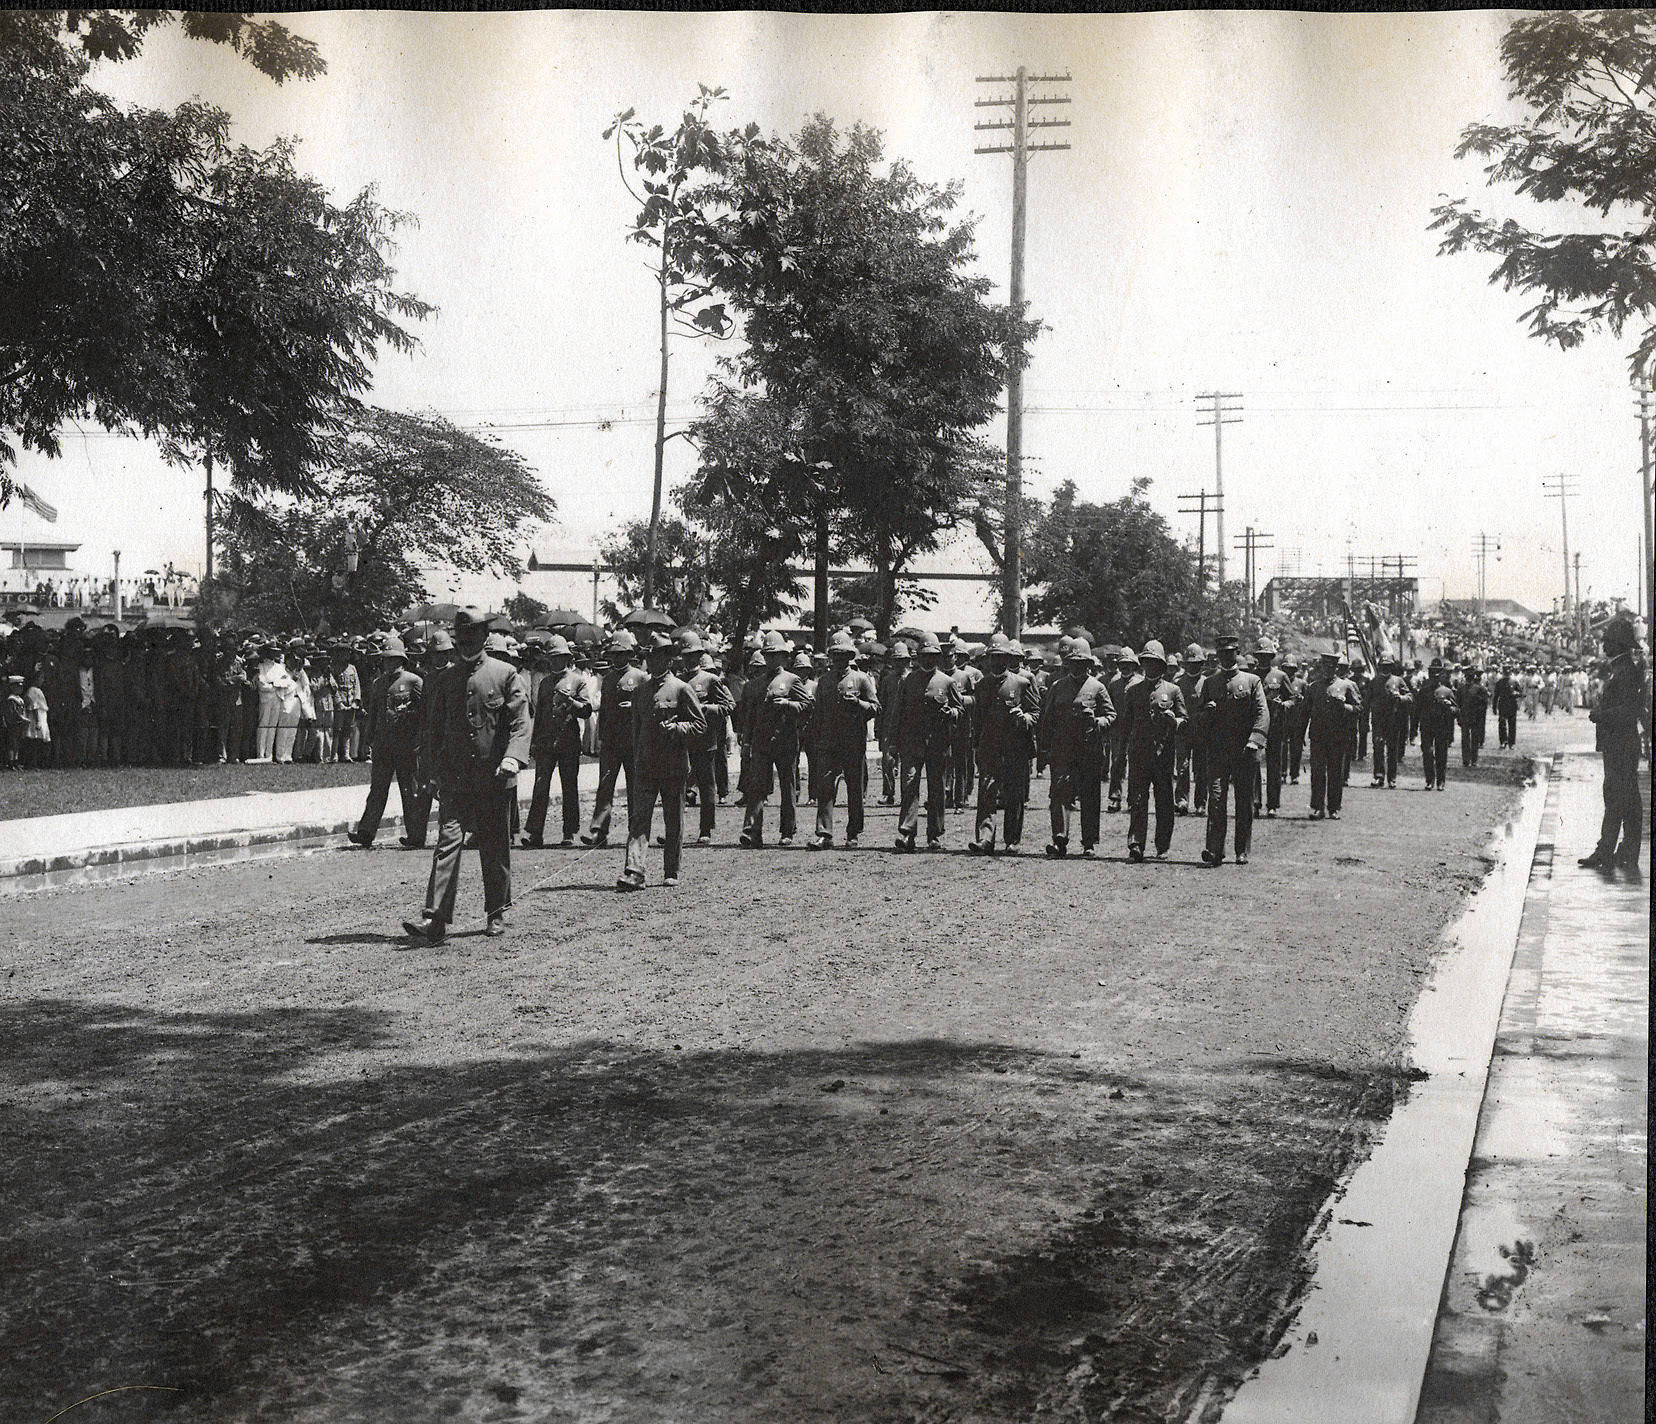 Manila: Soldiers march past viewing stand, Santa Cruz Bridge in the background